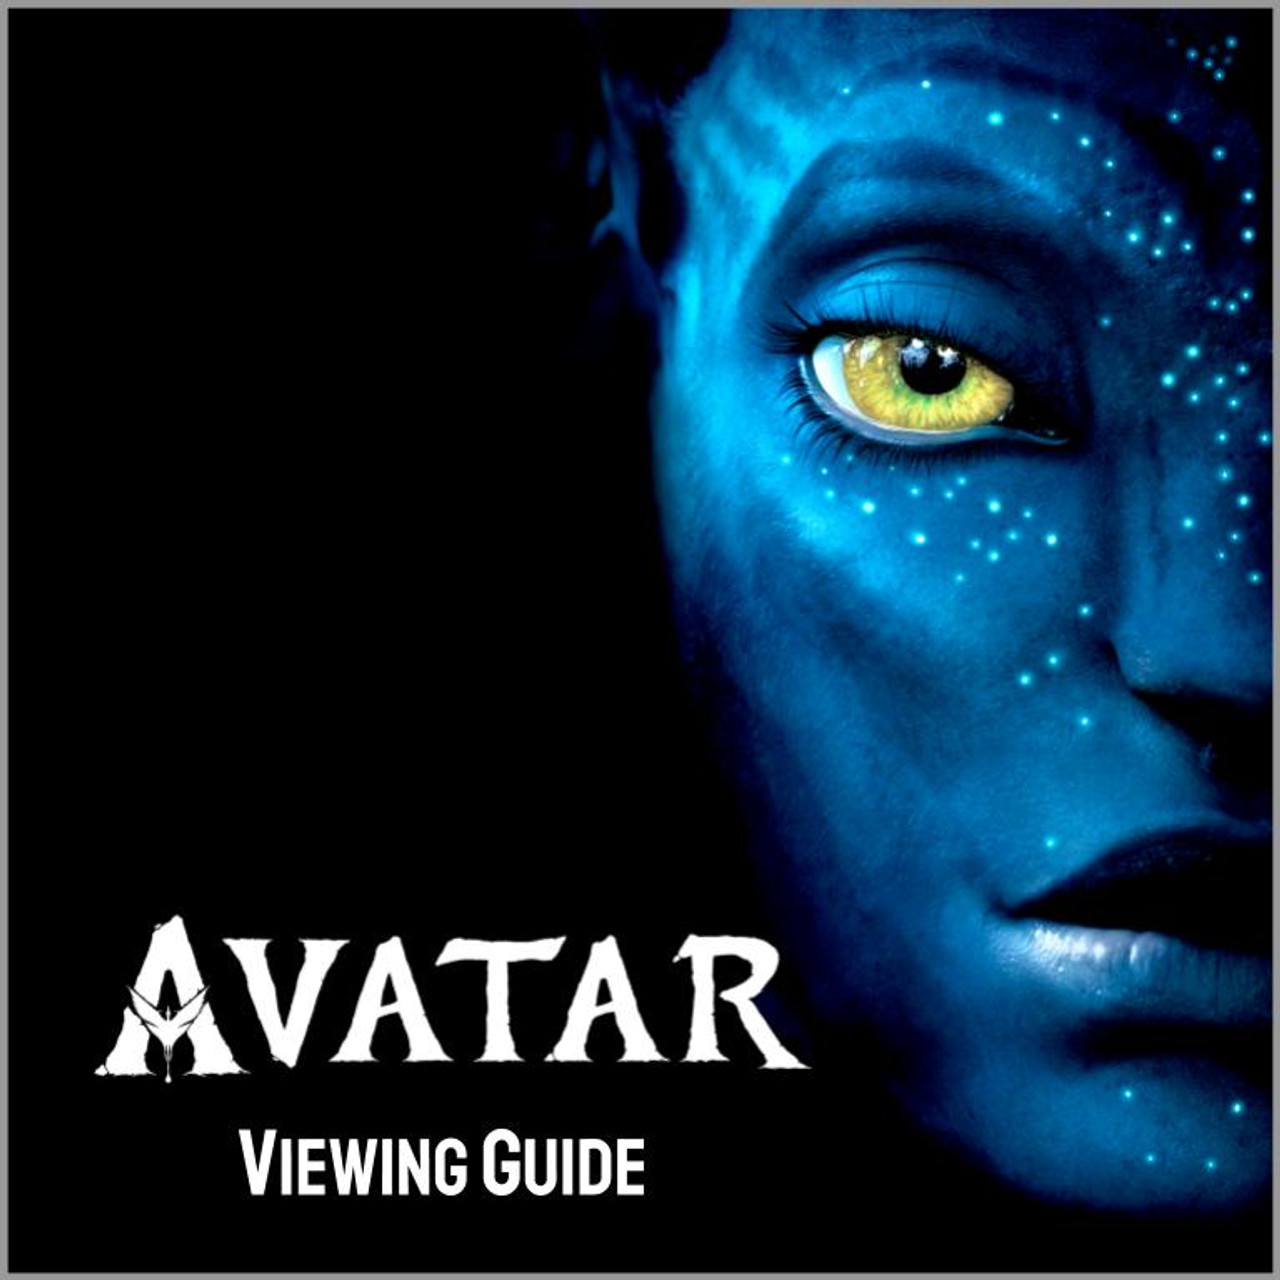 Avatar (2009) Viewing Guide